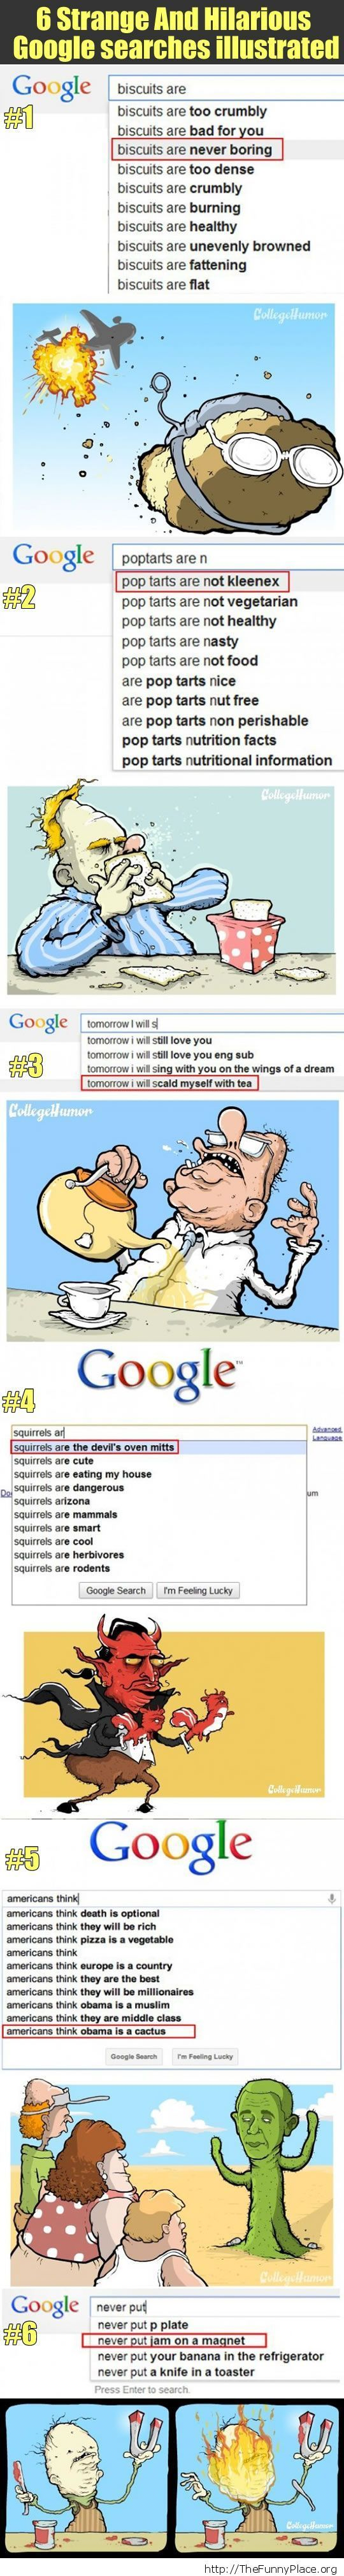 Strange and hilarious Google searches